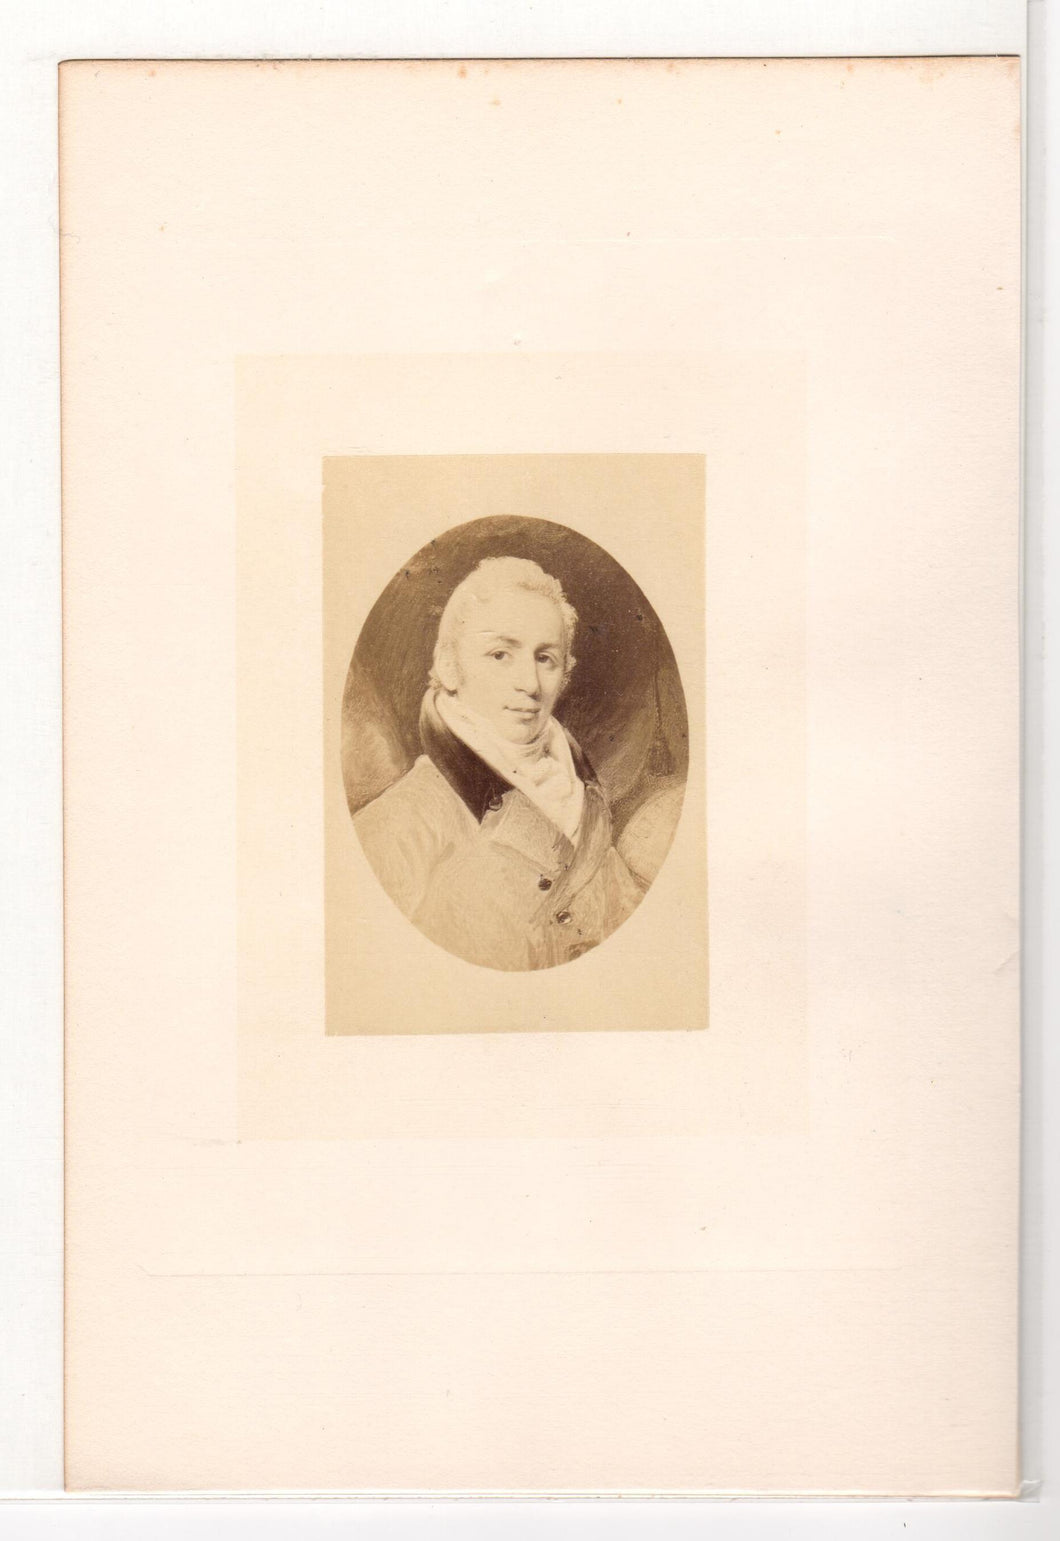 Photo of a portrait of Joseph Bouchette